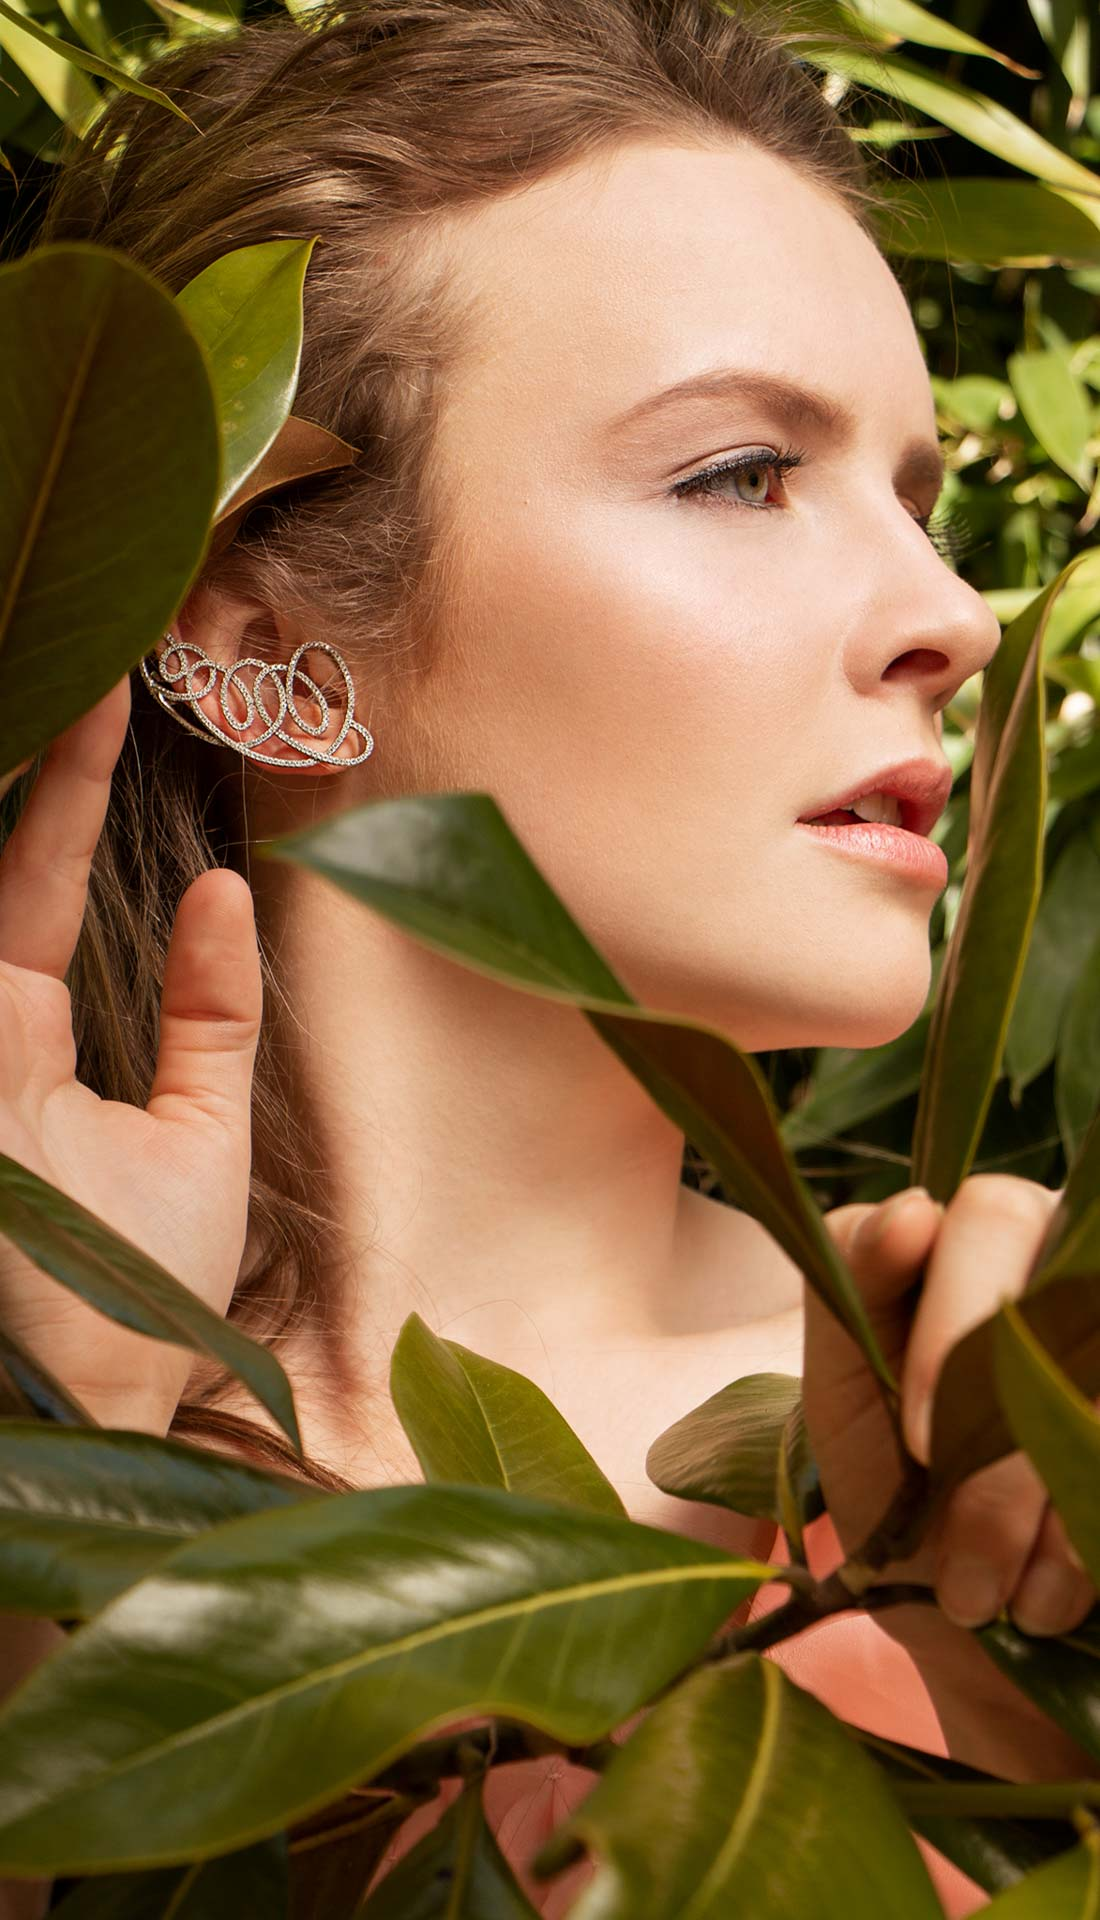 A brunette female model posing in fashion jewellery in a jungle. Jewellery photography Birmingham uk, Commercial photographer Birmingham, jewellery fashion, fashion photographer Birmingham and West Midlands